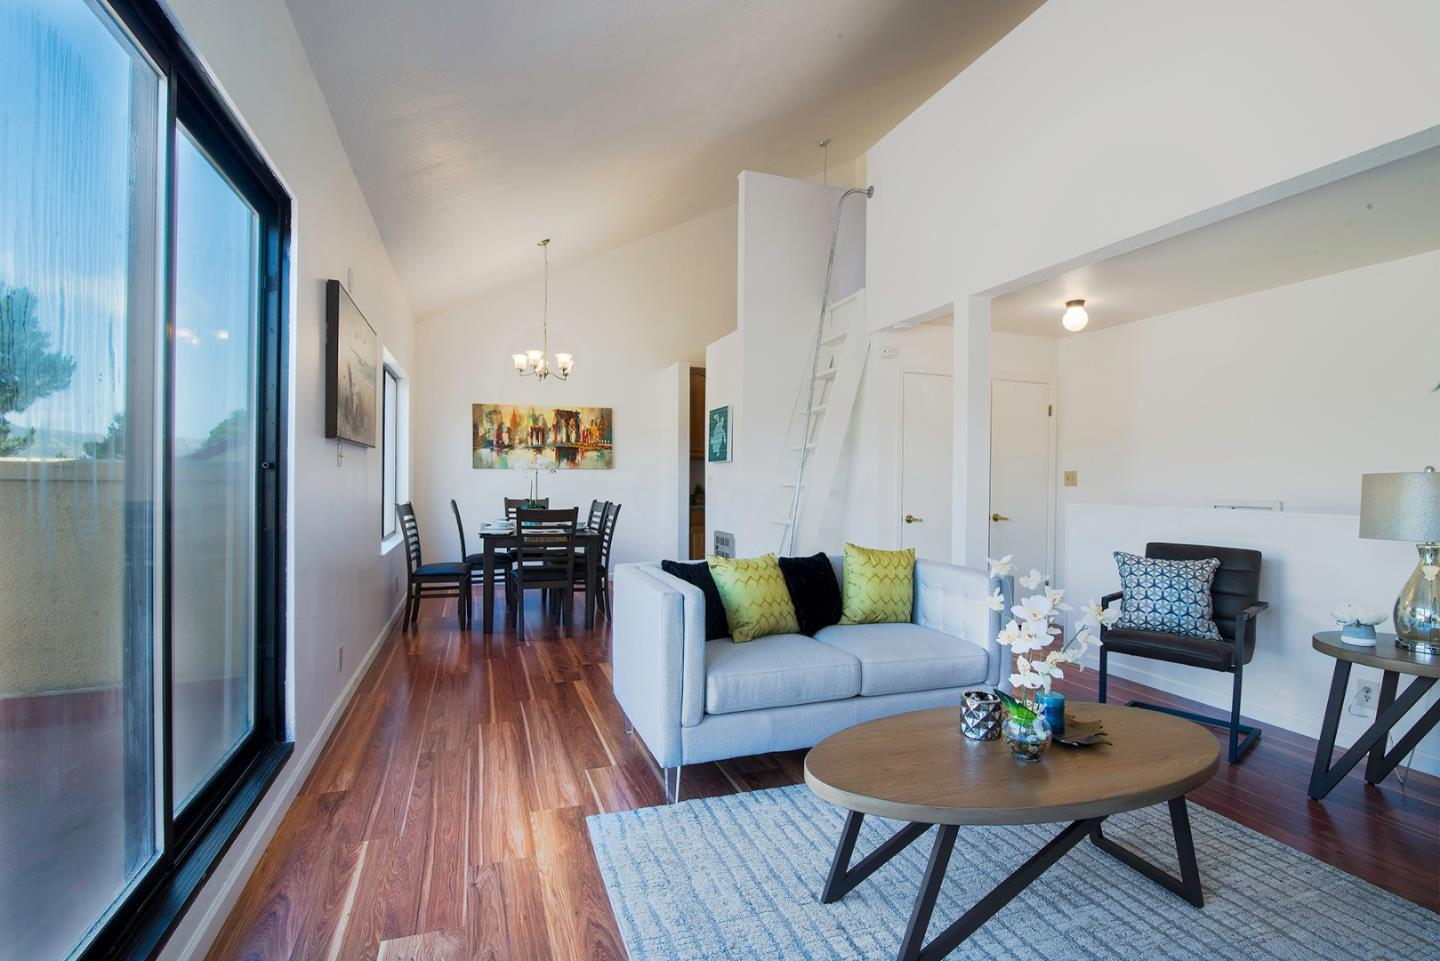 Image for 1 Appian Way 713-8, <br>South San Francisco 94080